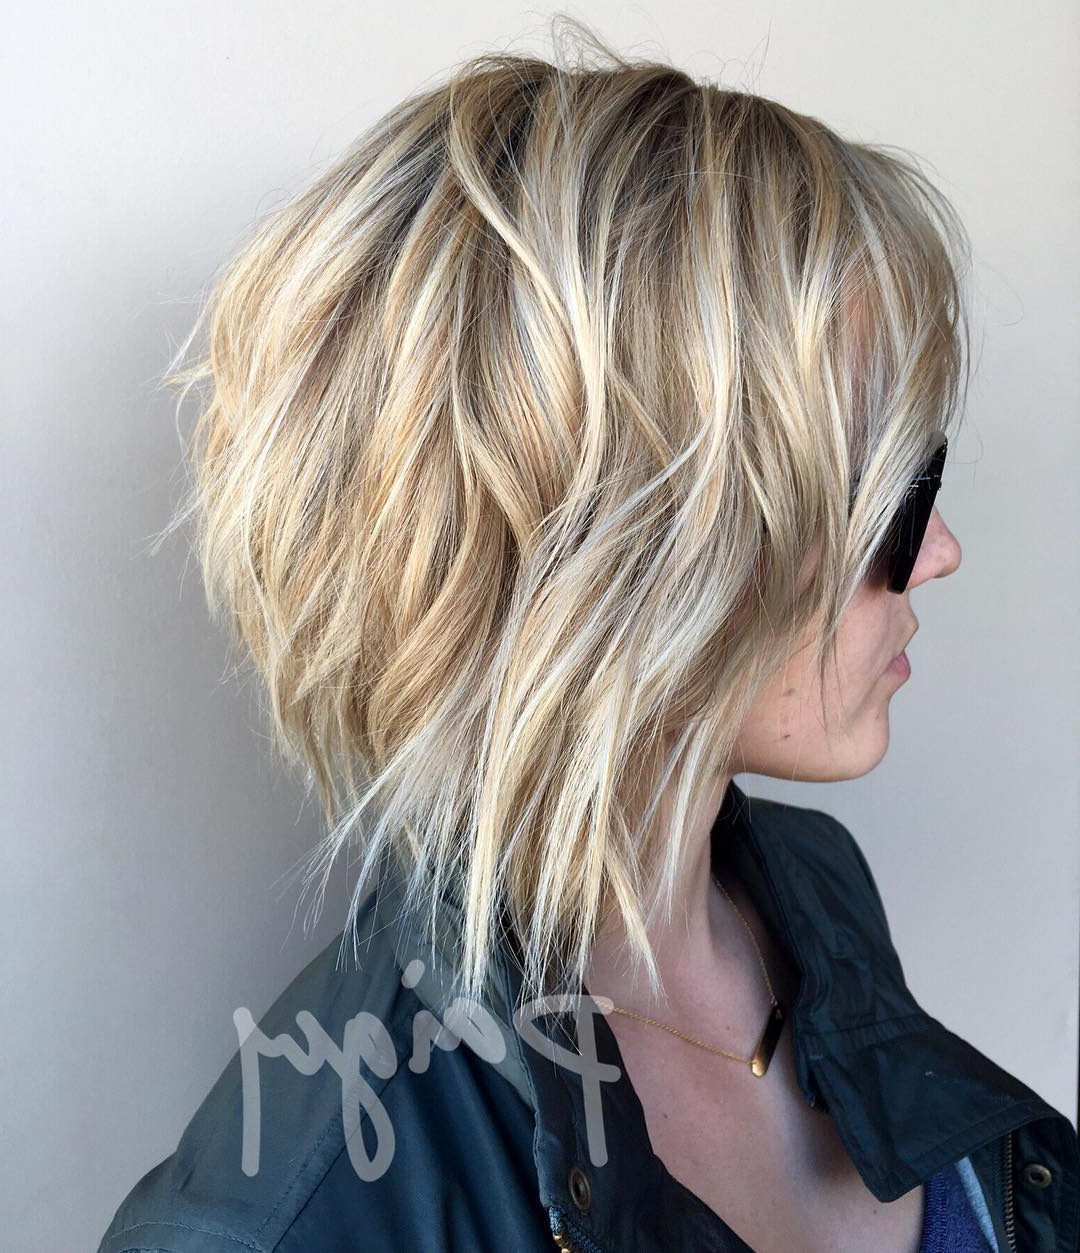 10 Trendy Choppy Lob Haircuts For Women, Best Medium Hair Intended For Most Recently Released Blonde Choppy Haircuts For Medium Hair (Gallery 5 of 20)